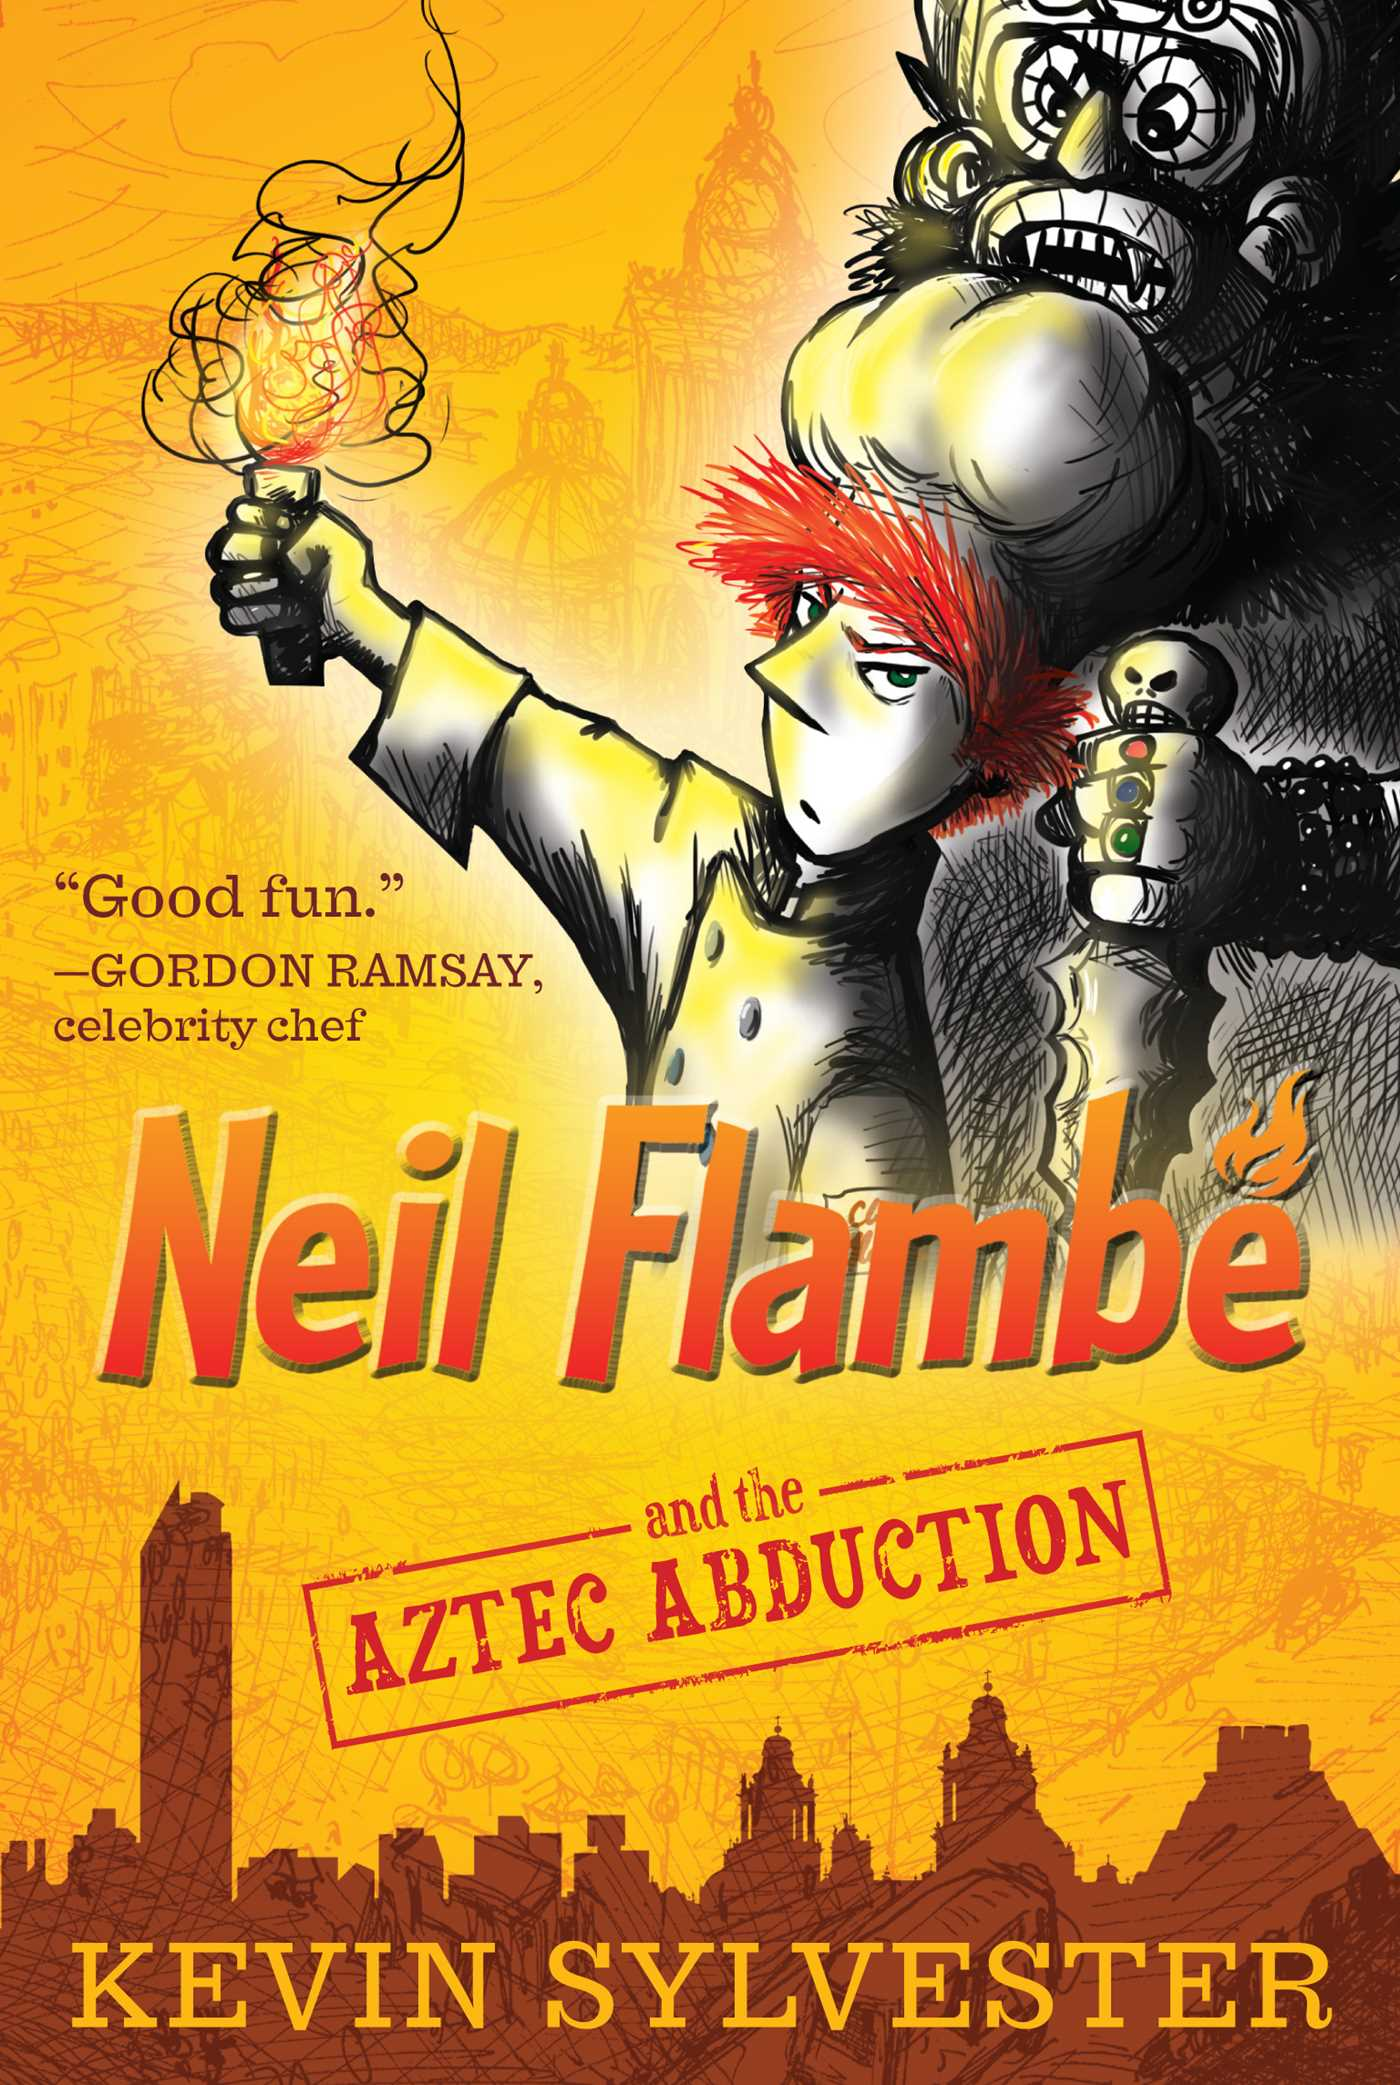 Neil-flambe-and-the-aztec-abduction-9781442446090_hr